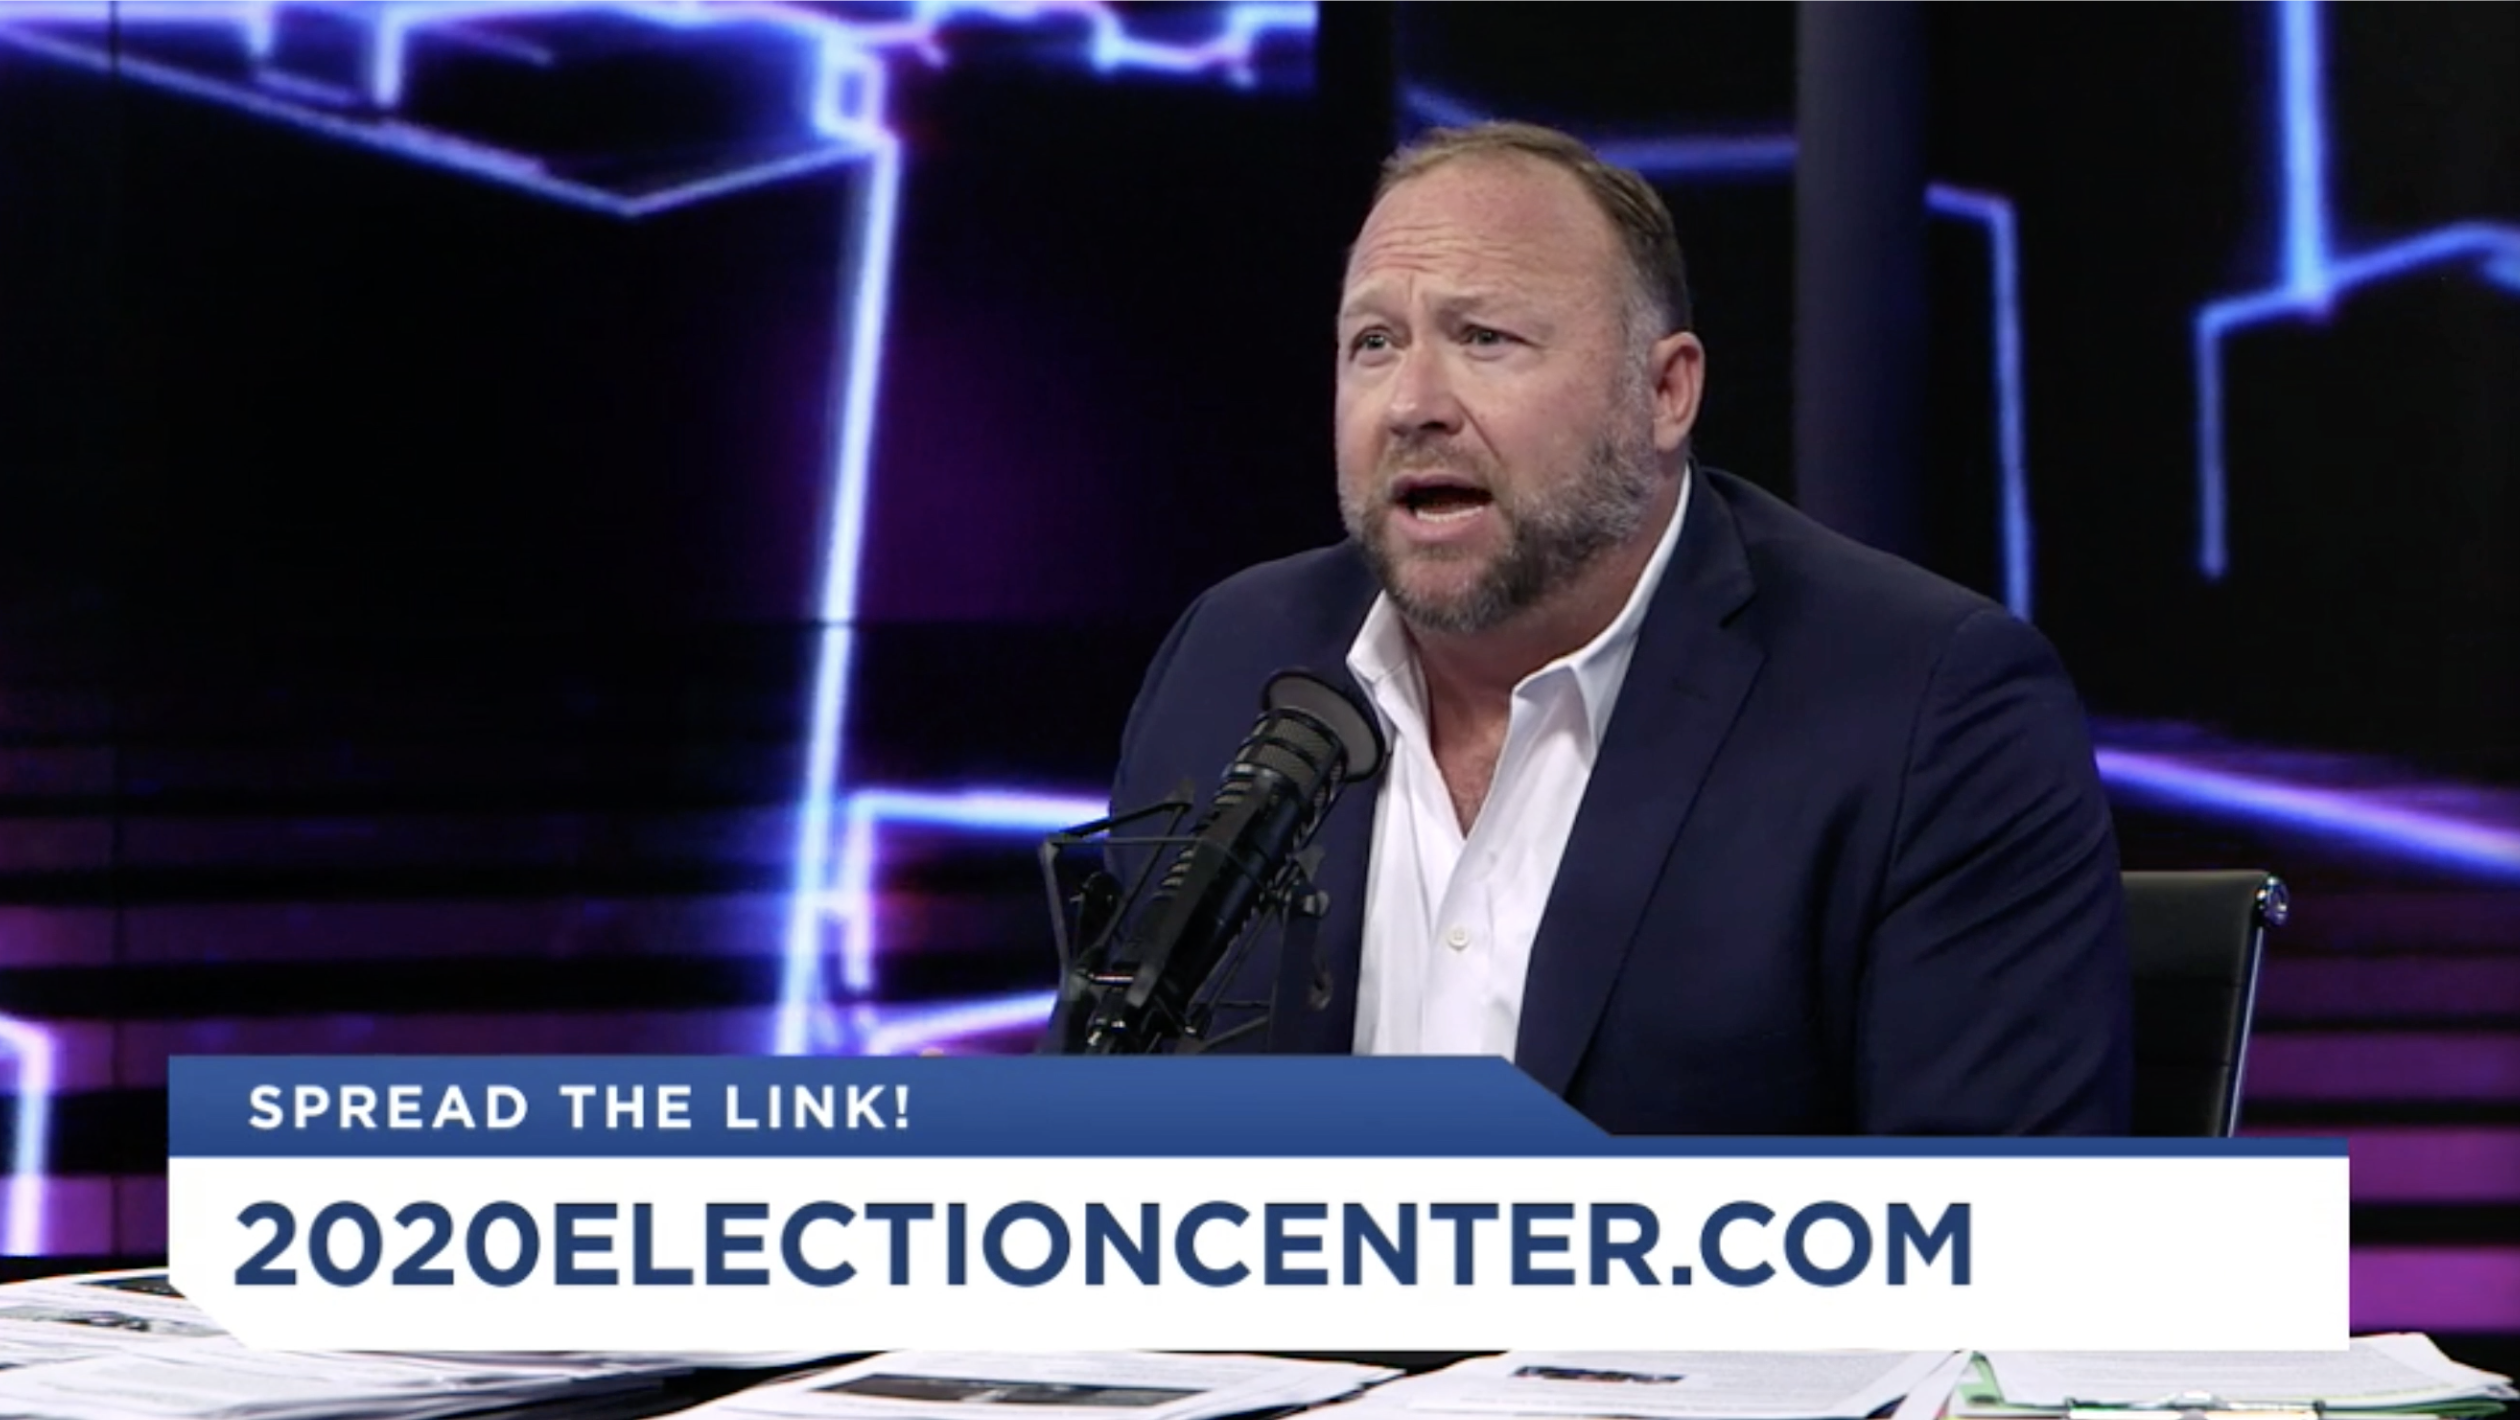 Alex Jones Infowars Studio 2020 Election Center EXZM September 10th 2020